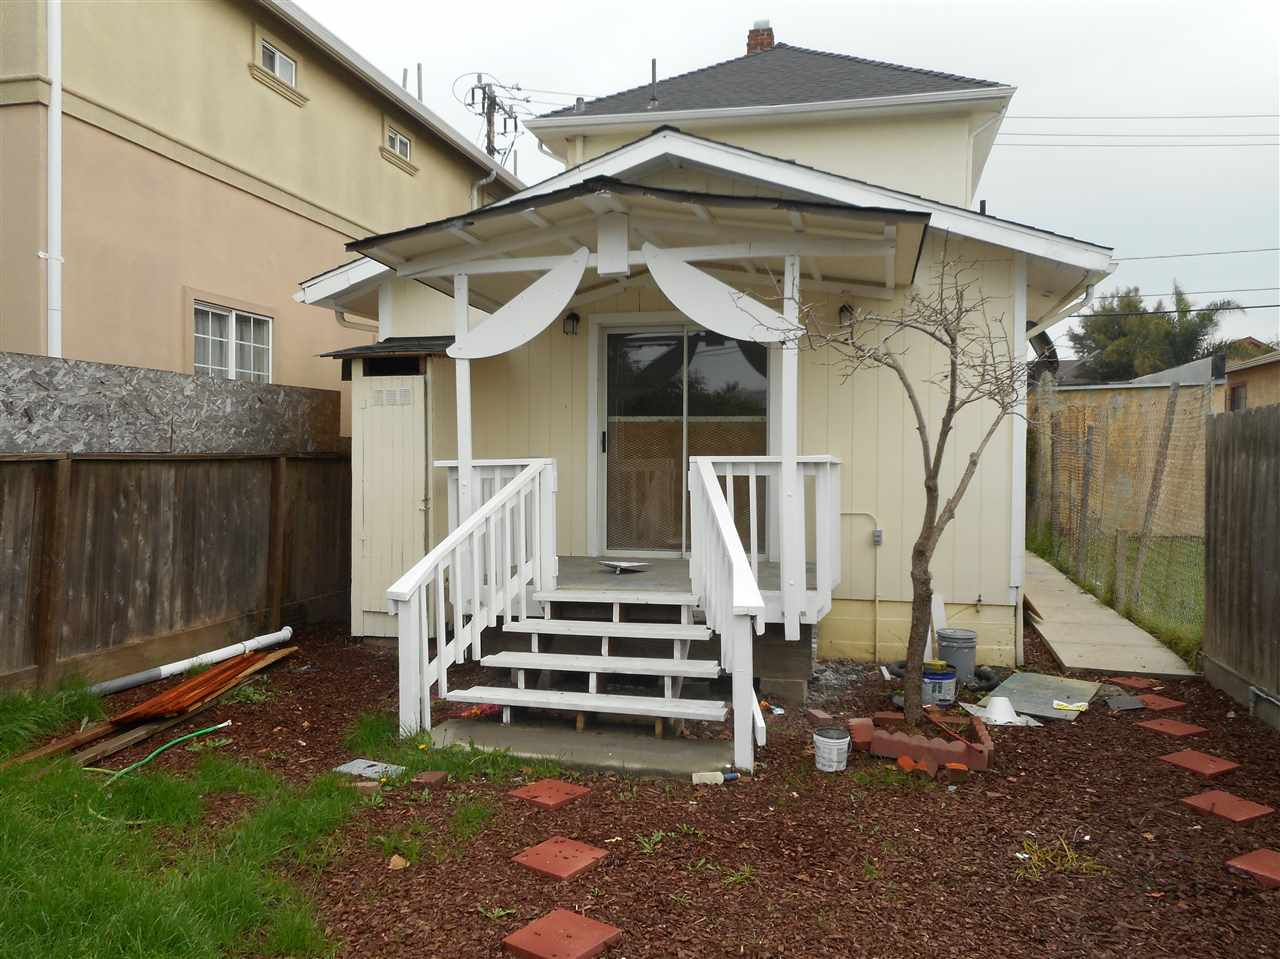 237 1ST ST, RICHMOND, CA 94801